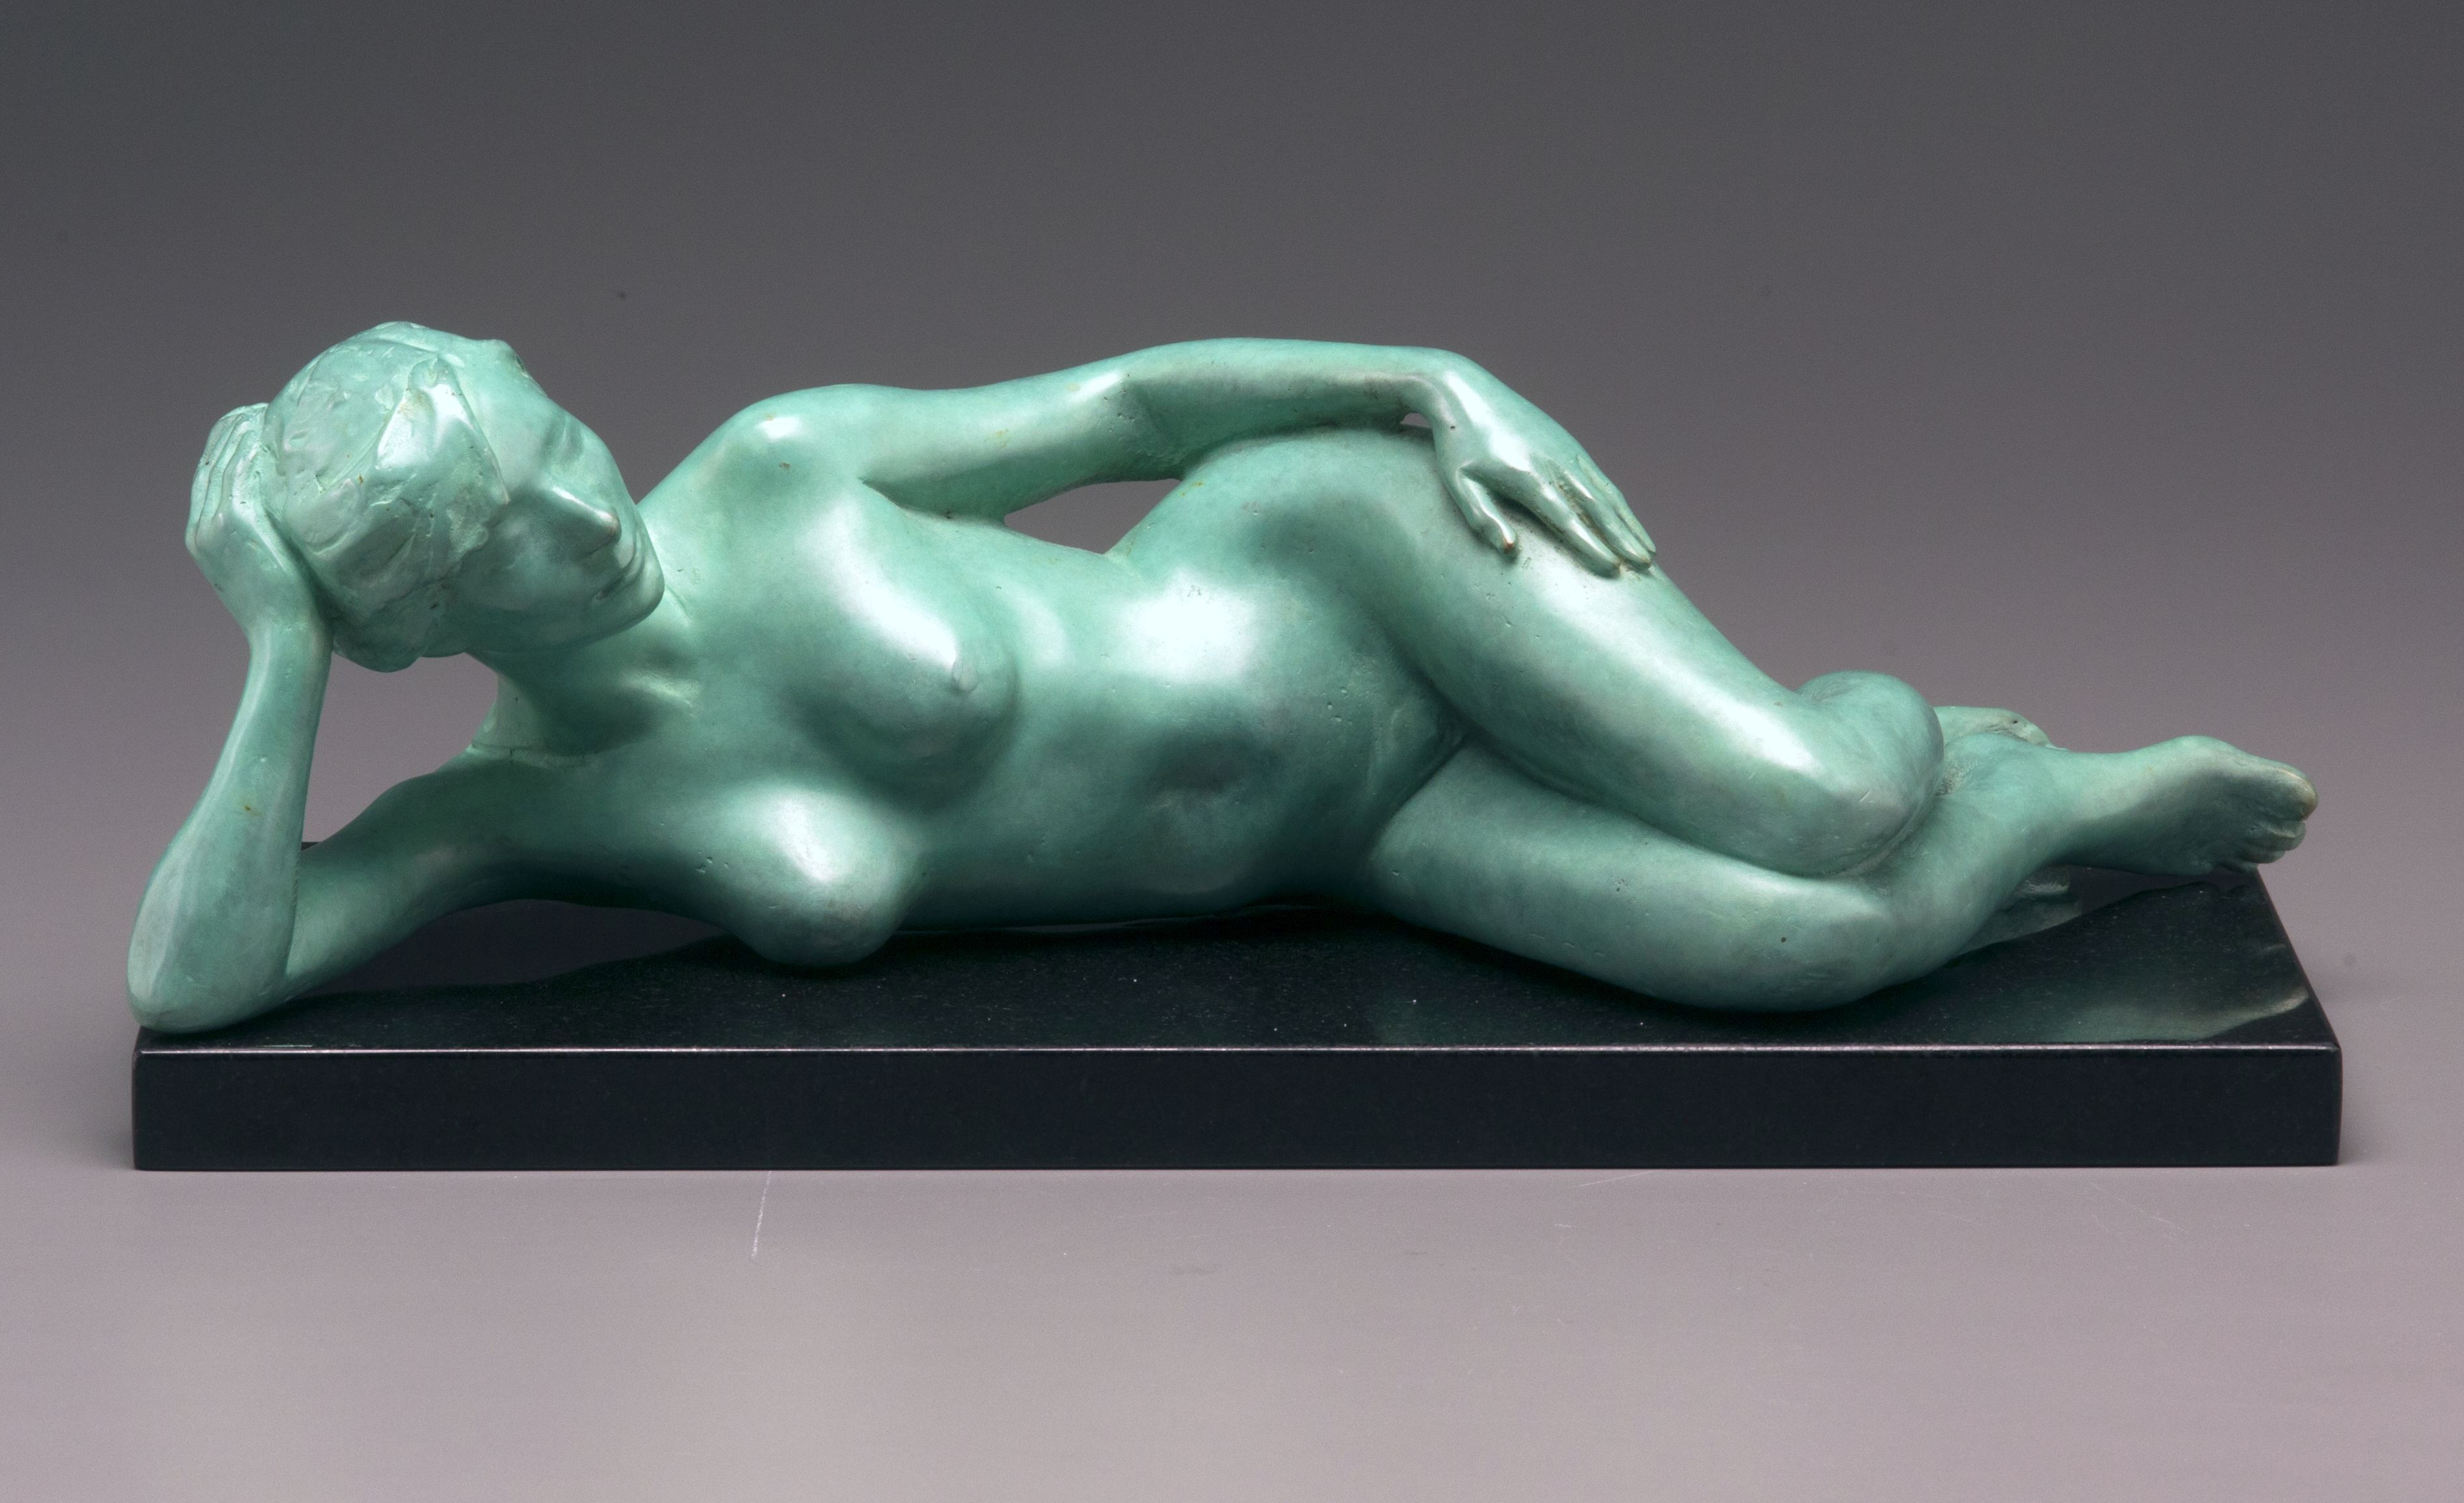 Repose, bronze, 5 x 14 x 6 inches